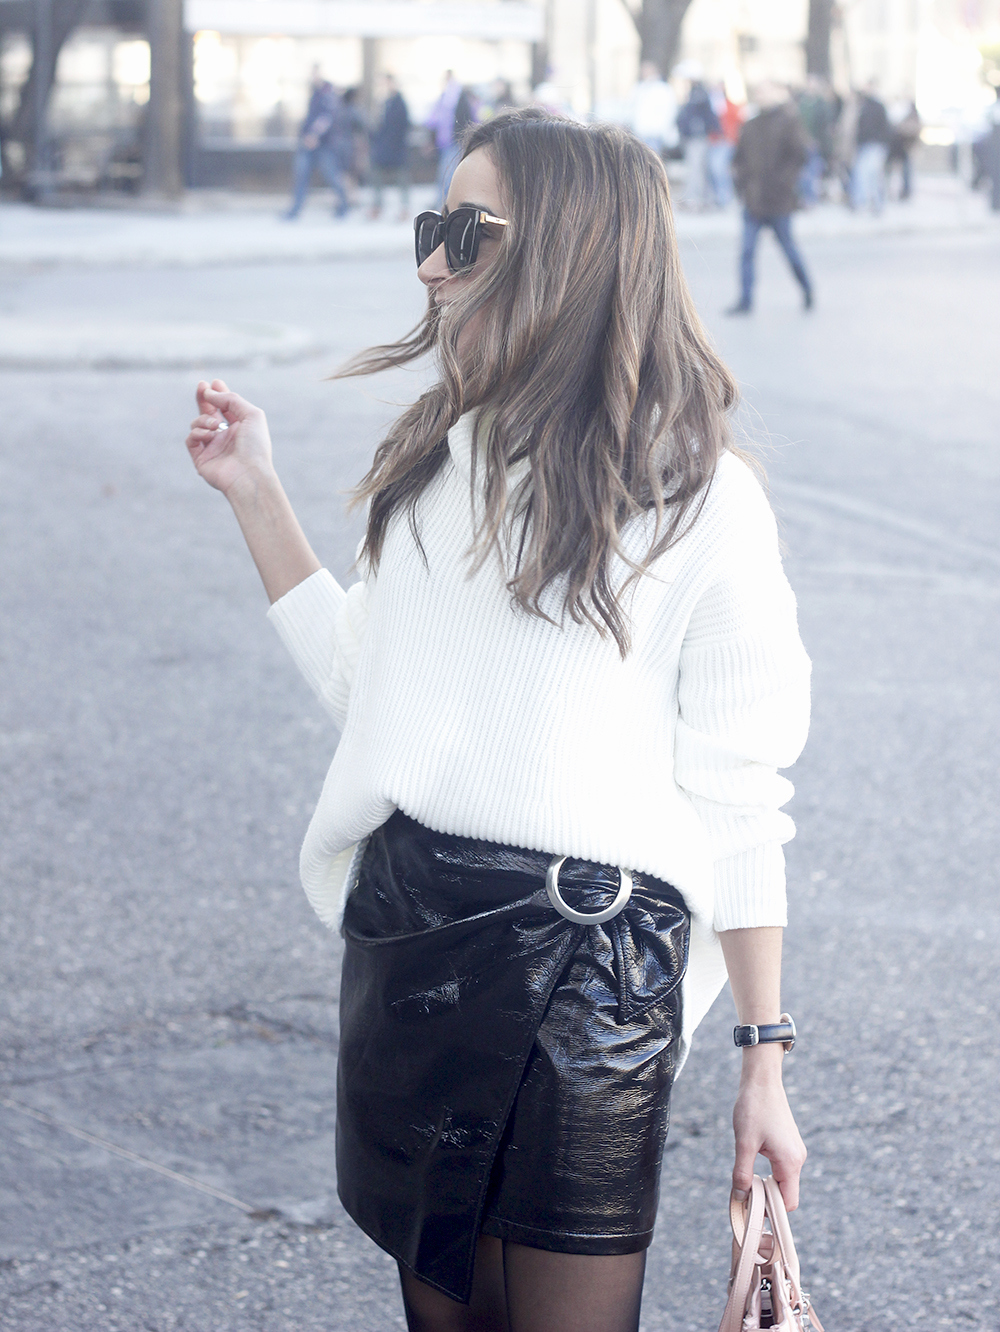 Black Patent leather skirt white sweater coach bag heels outfit style fashion winter13